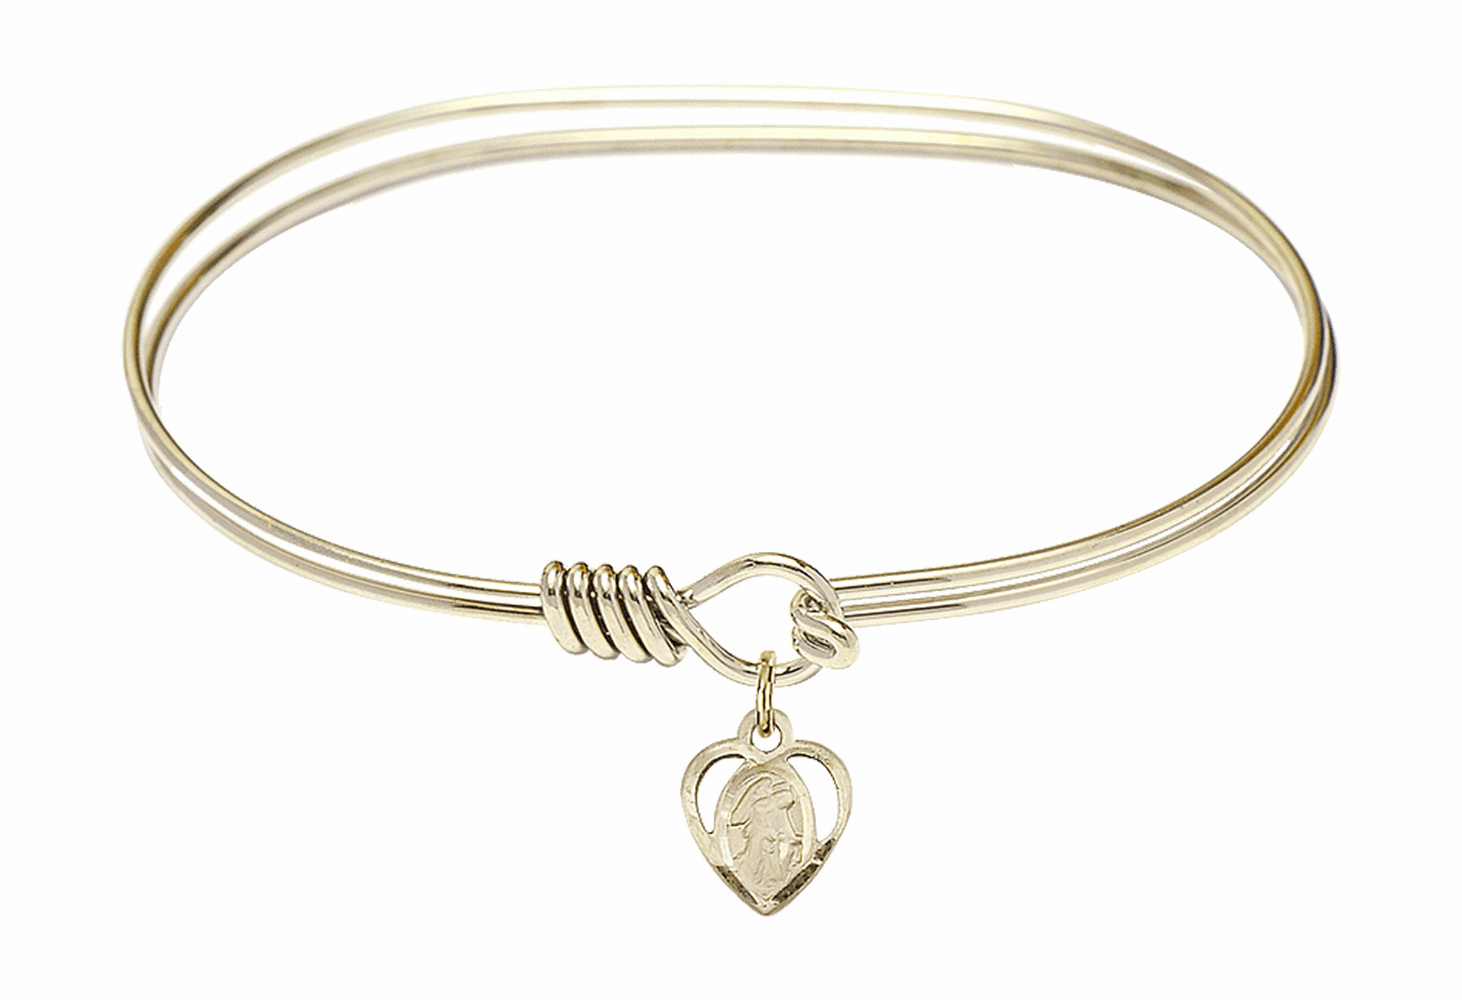 Round Eye Hook Bangle Bracelet w/Guardian Angel Heart Charm by Bliss Mfg